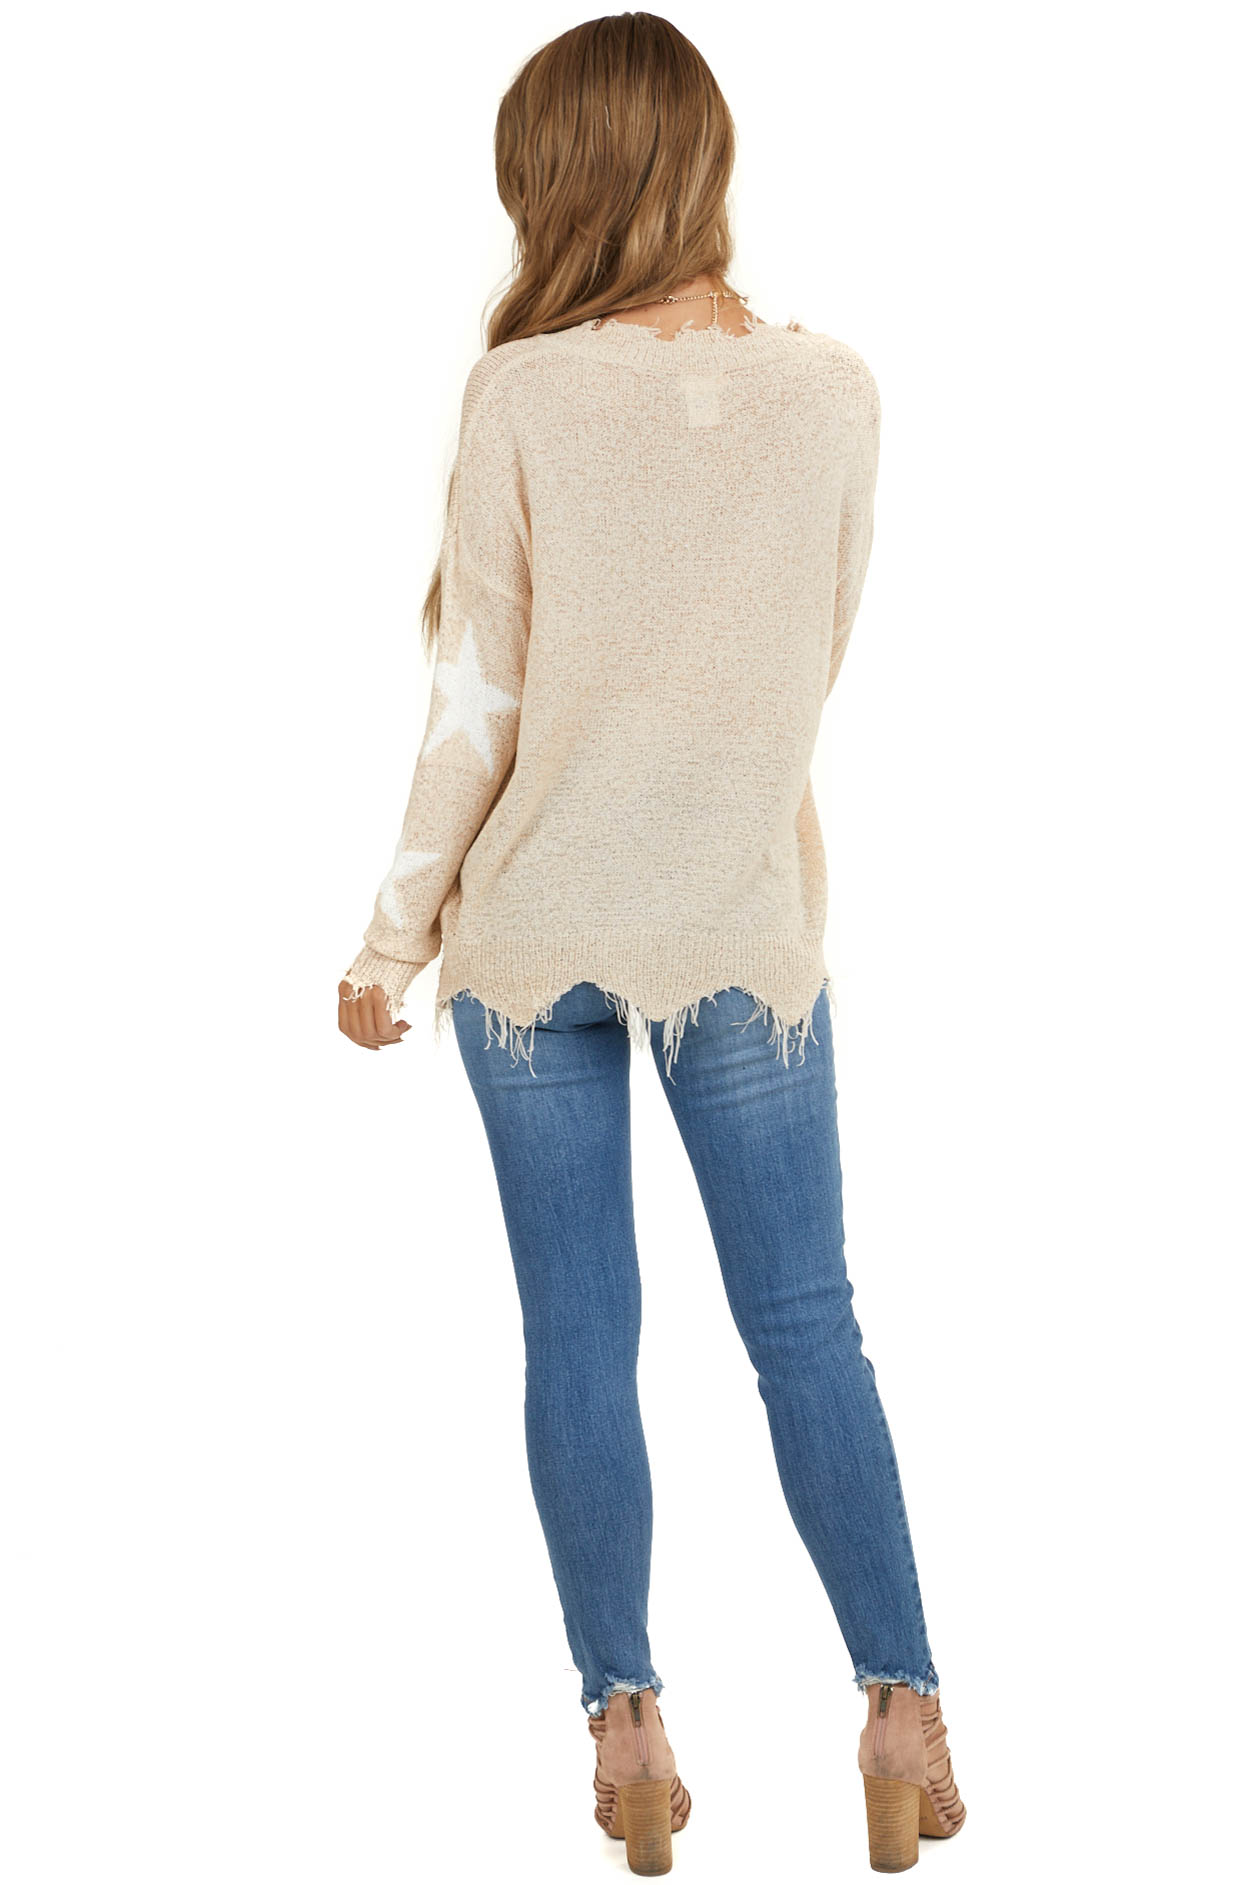 Peach V Neck Loose Knit Sweater with Frayed Edge and Stars